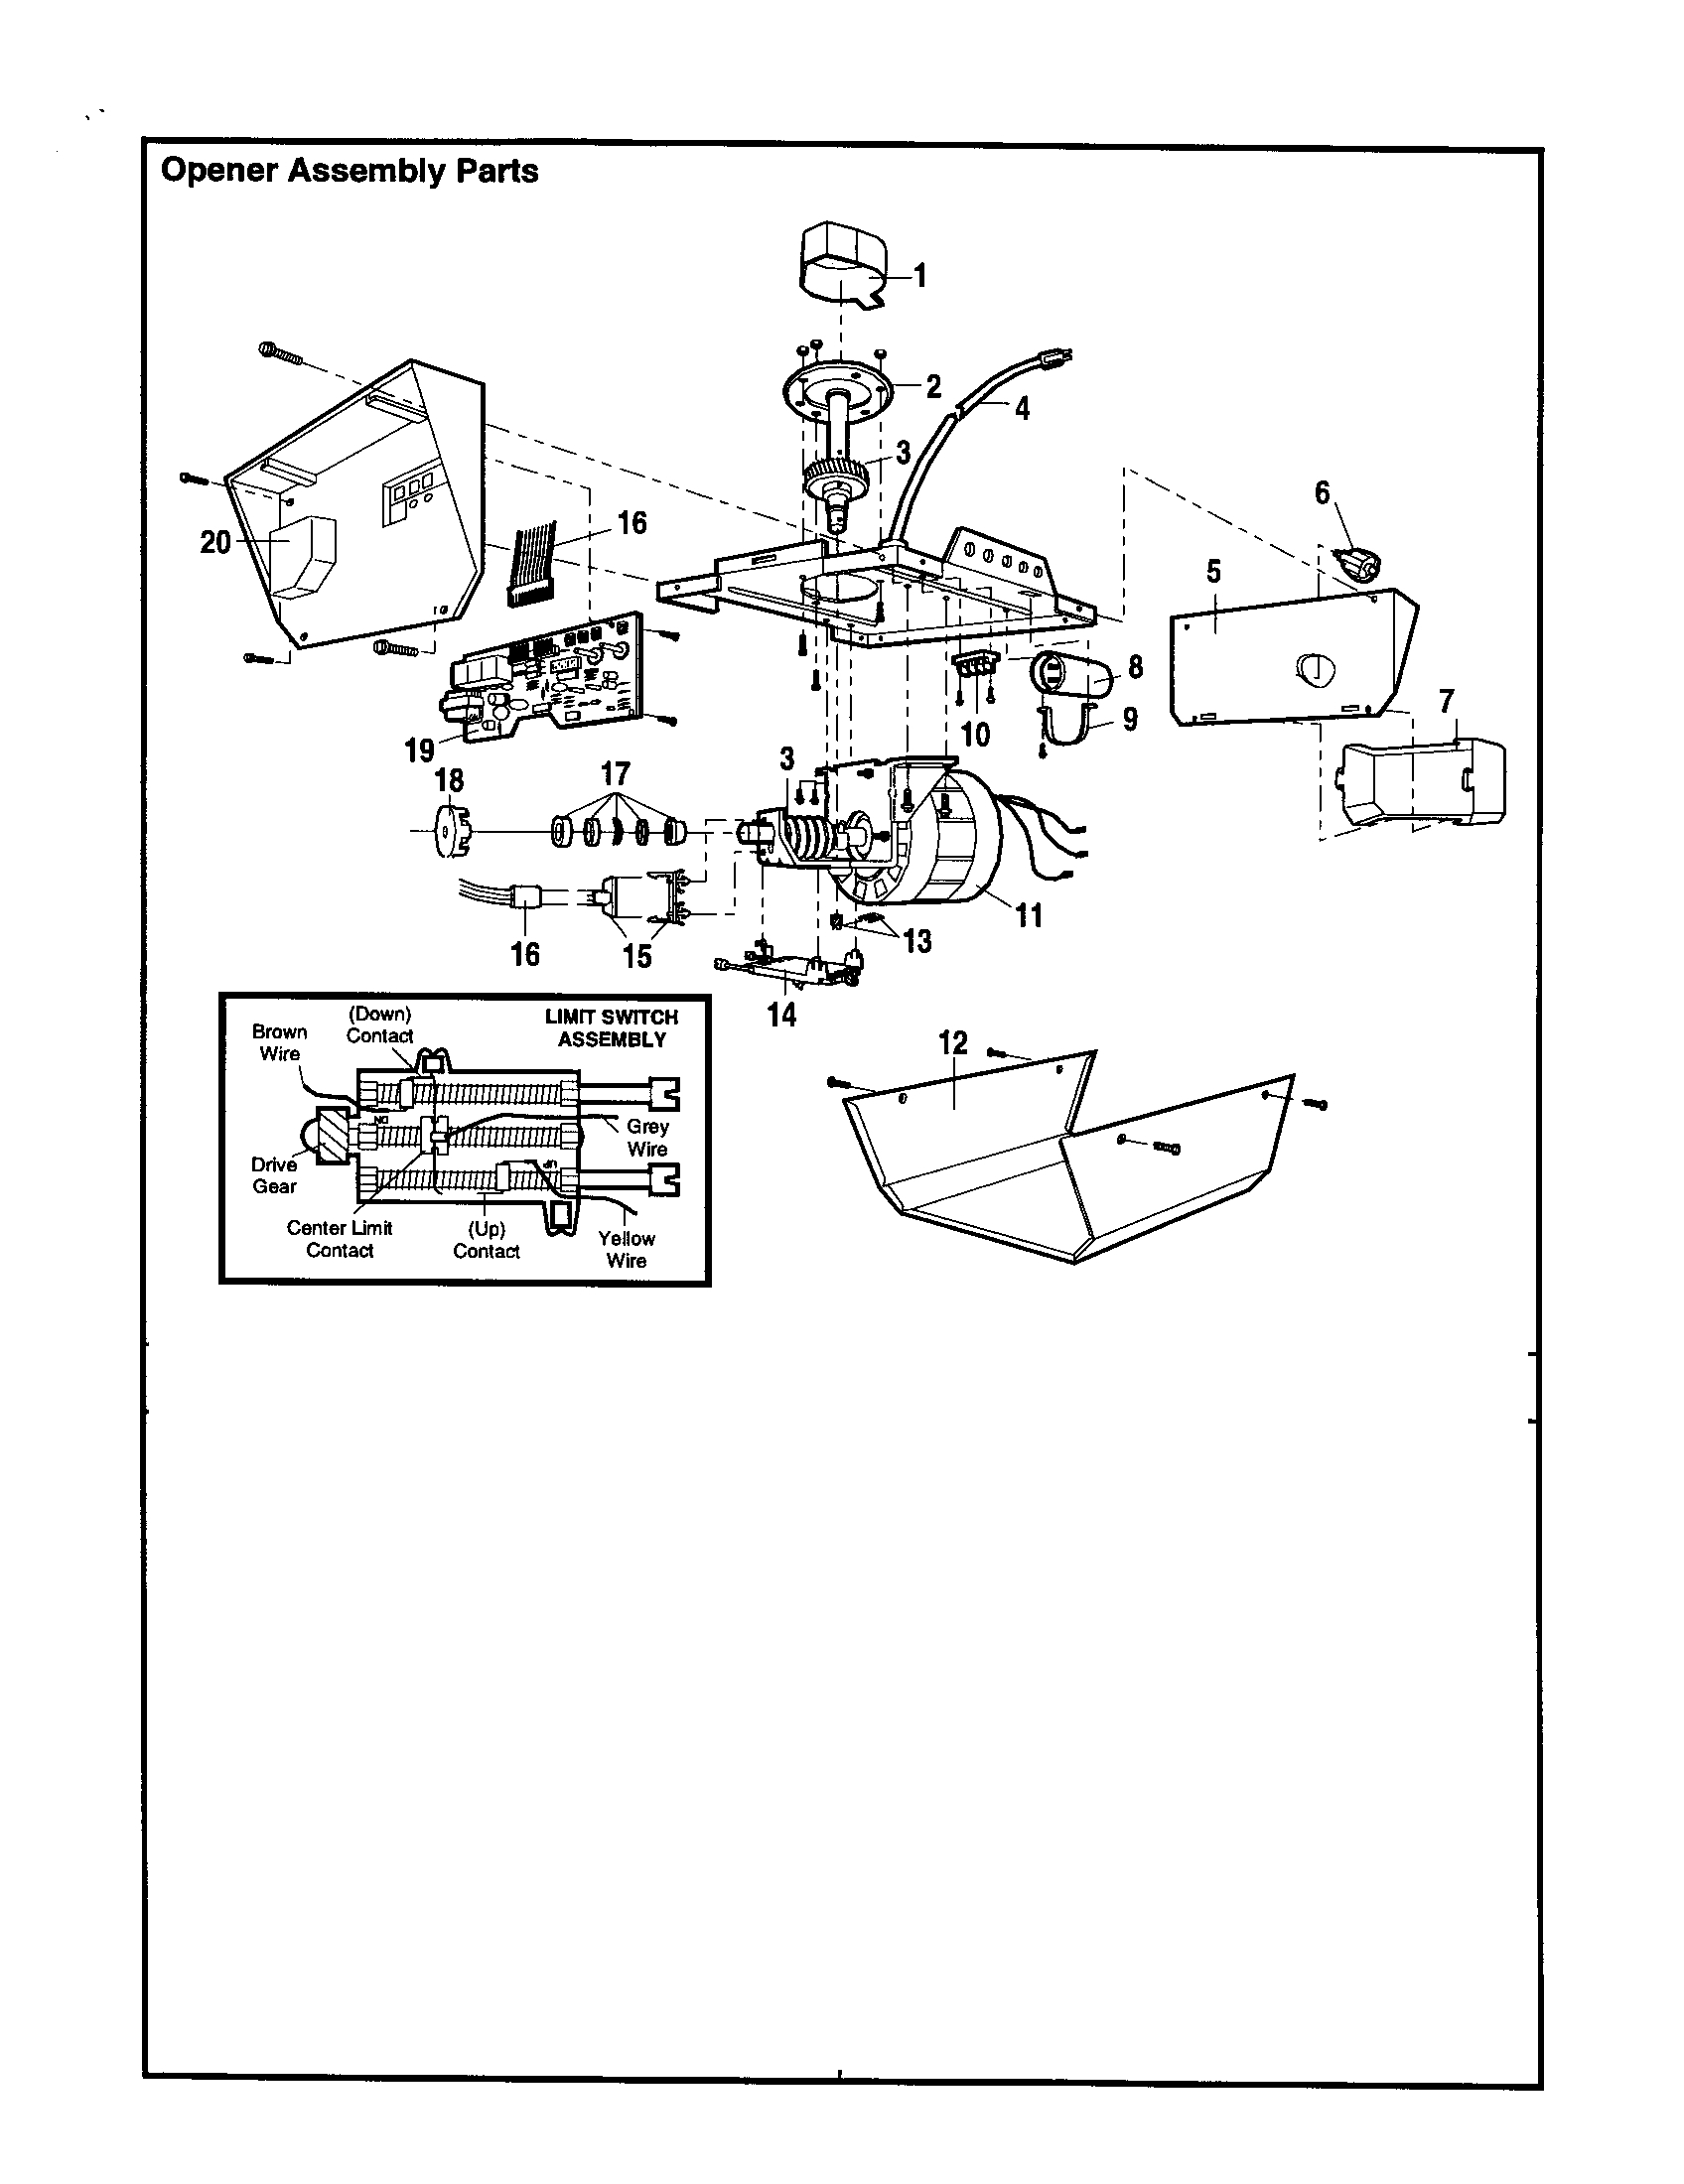 wiring diagram for liftmaster garage door opener johnson outboard ignition parts automotive